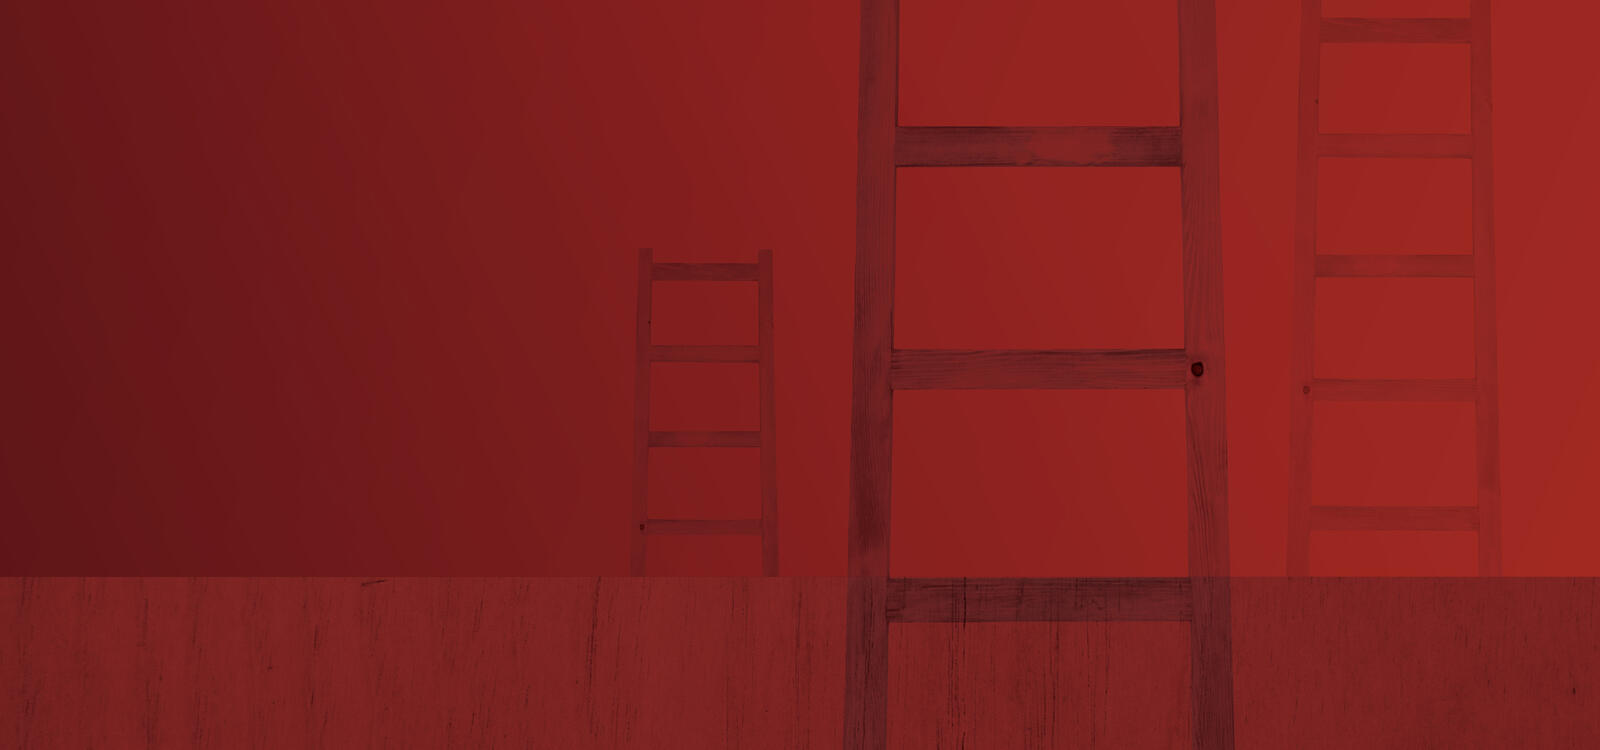 Red background with three faint maroon ladders in the photo